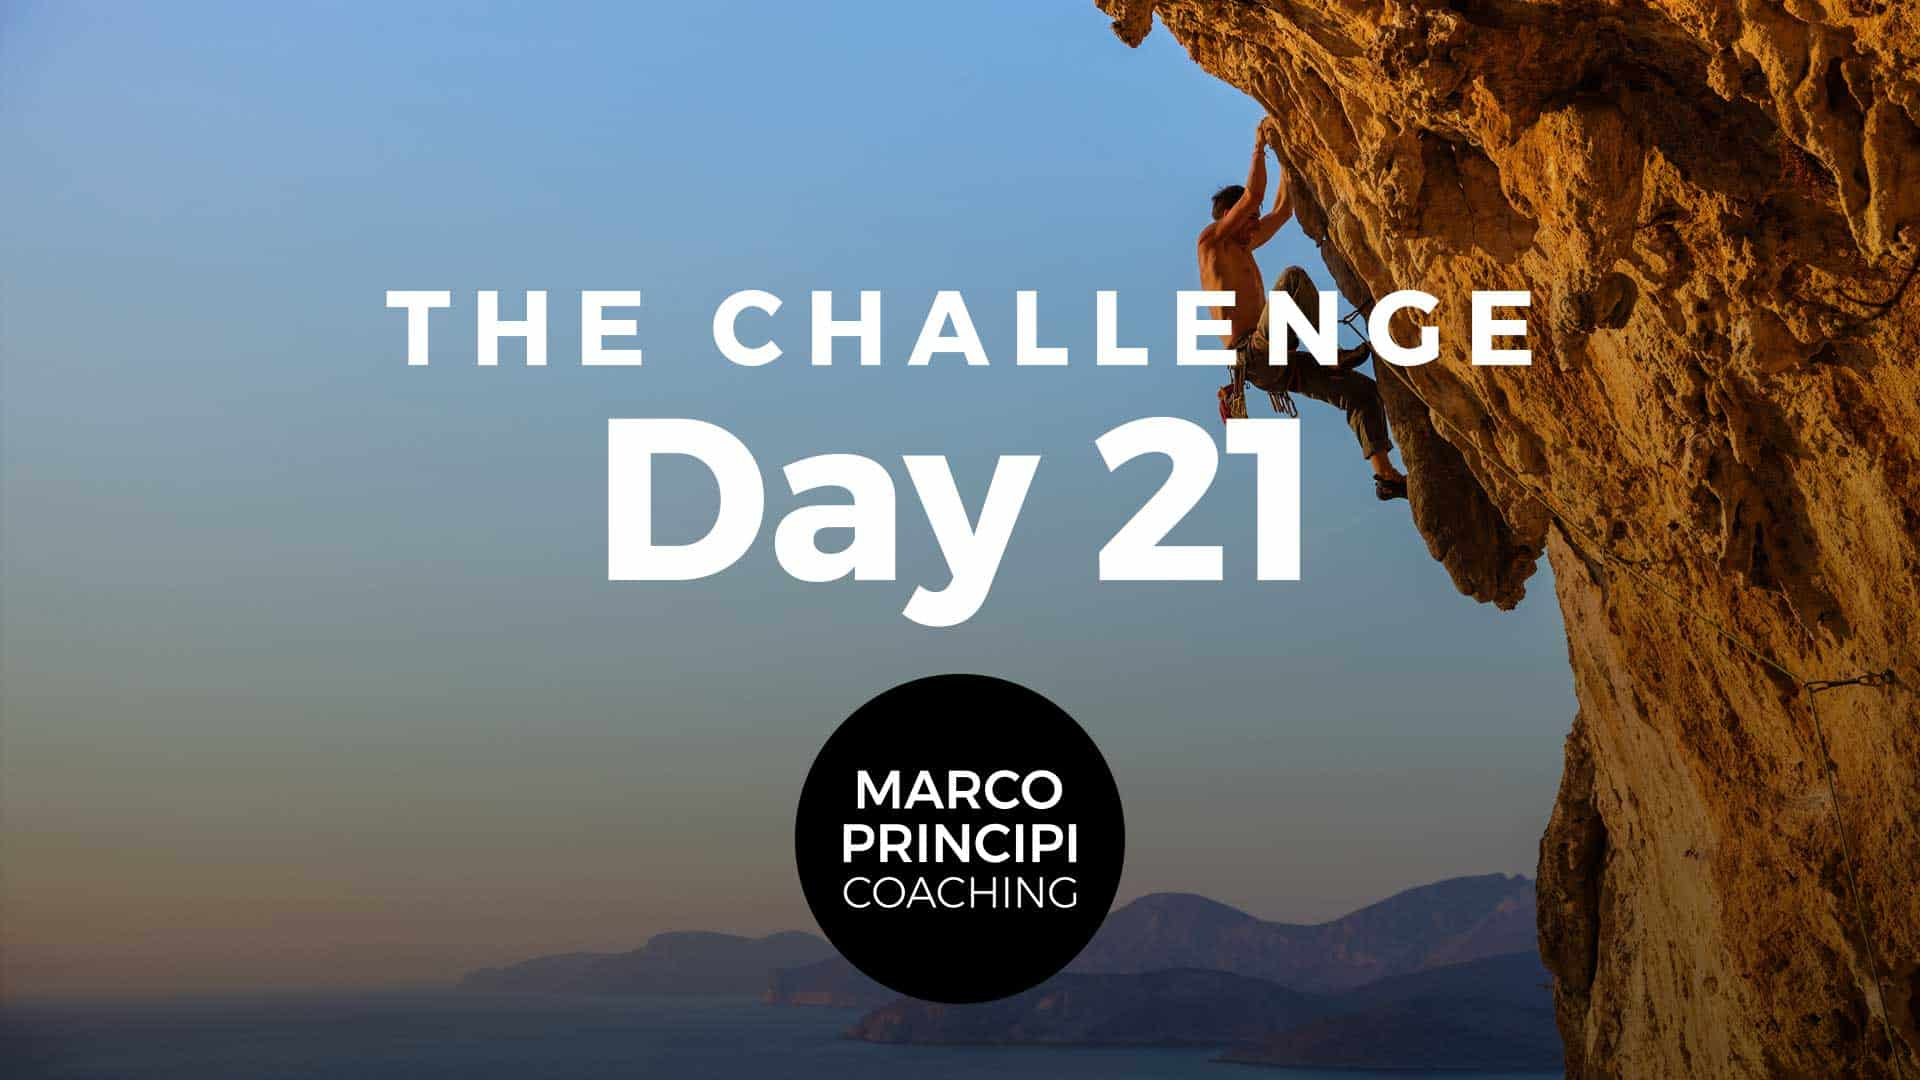 Marco Principi YT Cover The Challenge Day 021